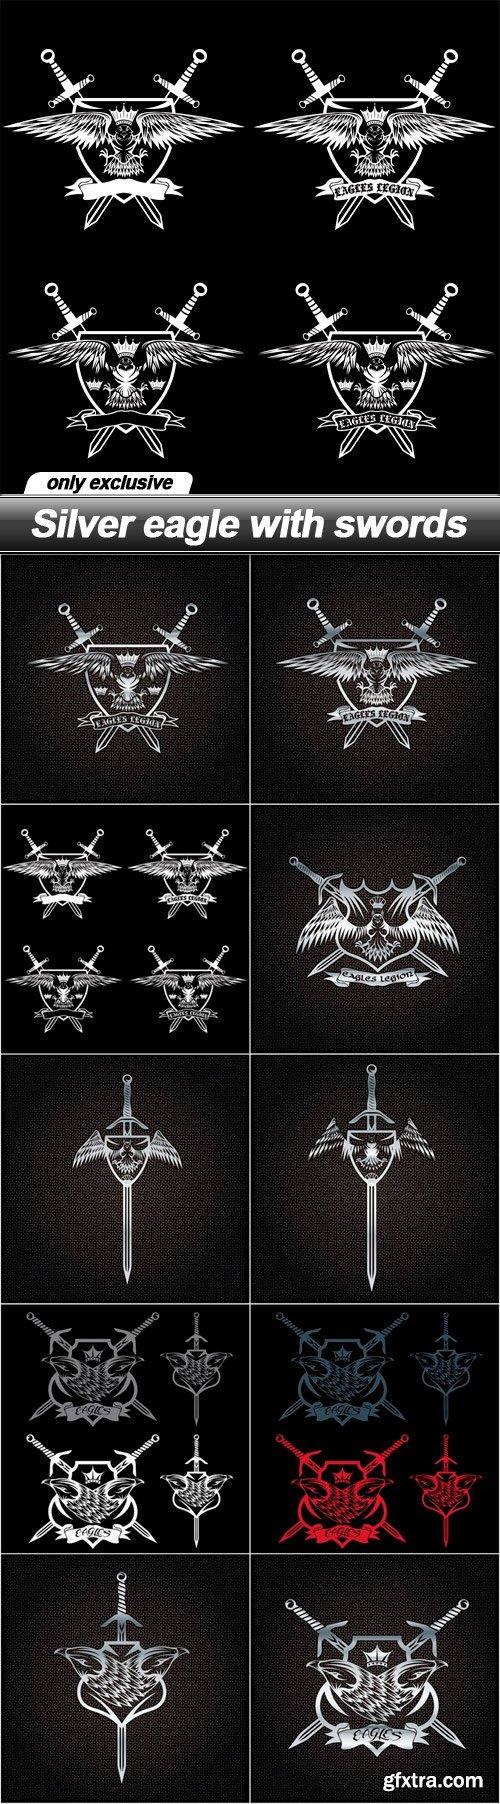 Silver eagle with swords - 10 EPS